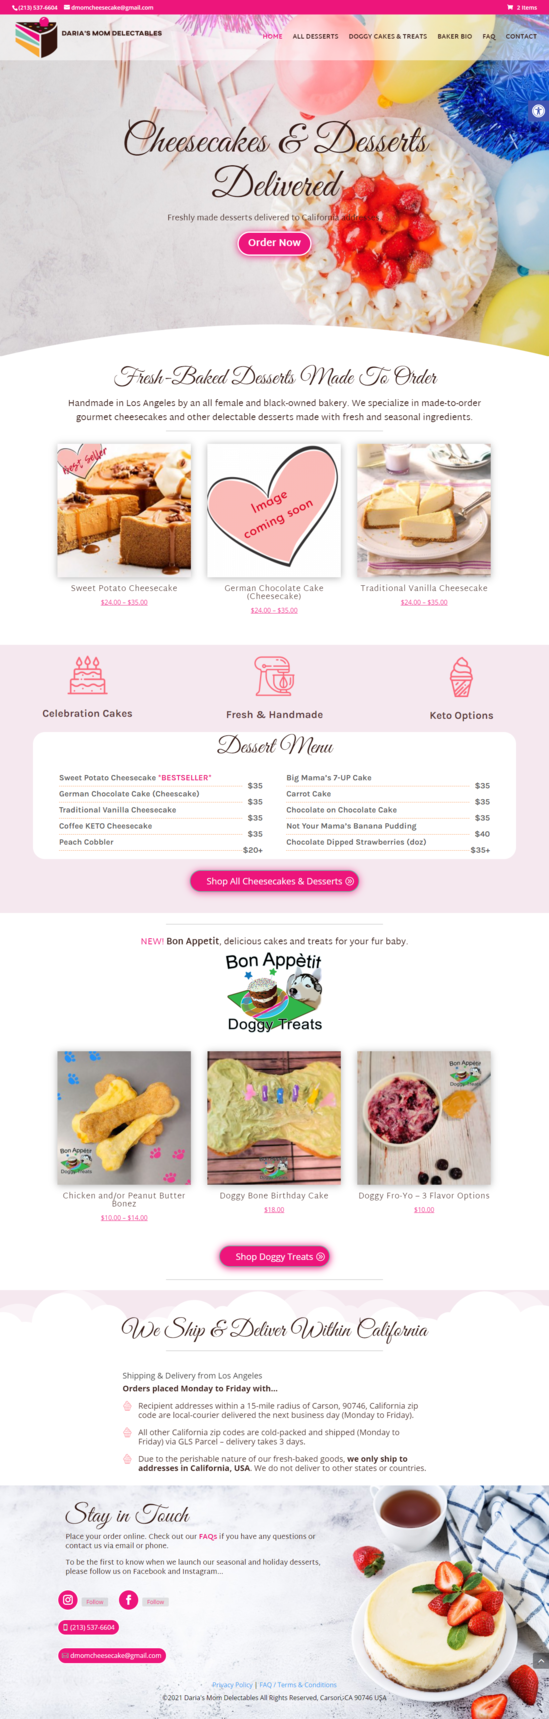 screencapture of a bakery website built in WordPress for Carson Bakery